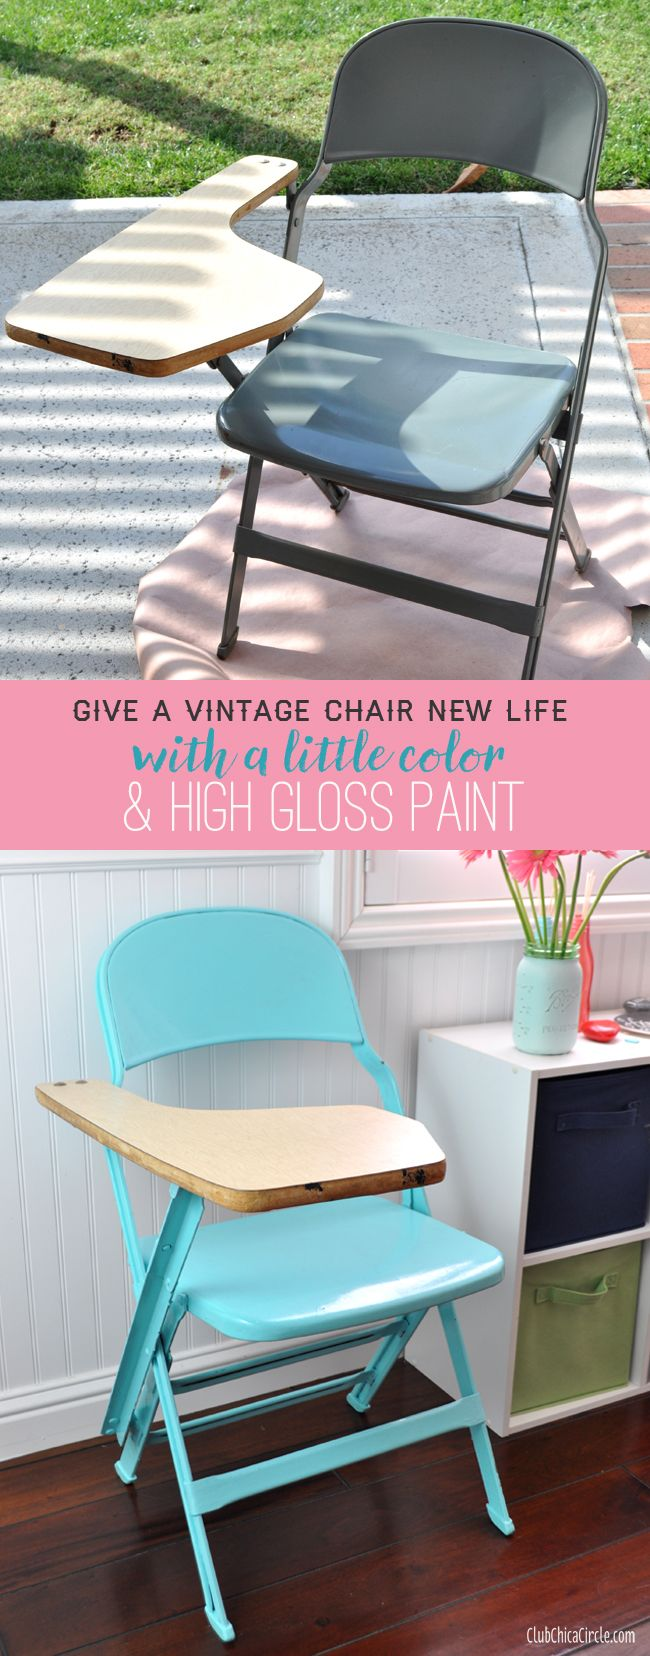 How to Give Old Folding Chairs a Colorful Makeover Crafts